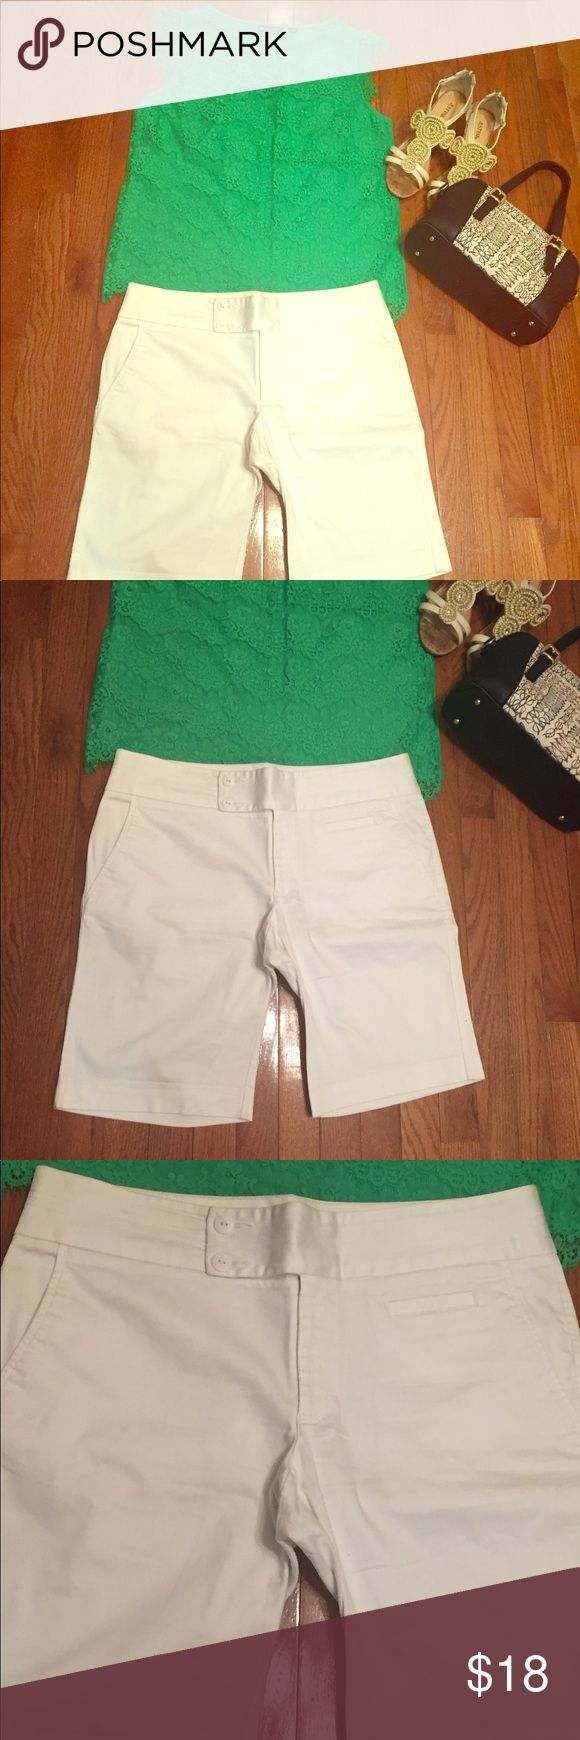 White Old Navy Bermudas White double button/tab closure stretch Bermuda shorts with side slant pockets and back pockets. Cotton/spandex blend, cute cuffs; EUC. Perfect with a polo or tee or even a sweet summer blouse. Old Navy Shorts Bermudas